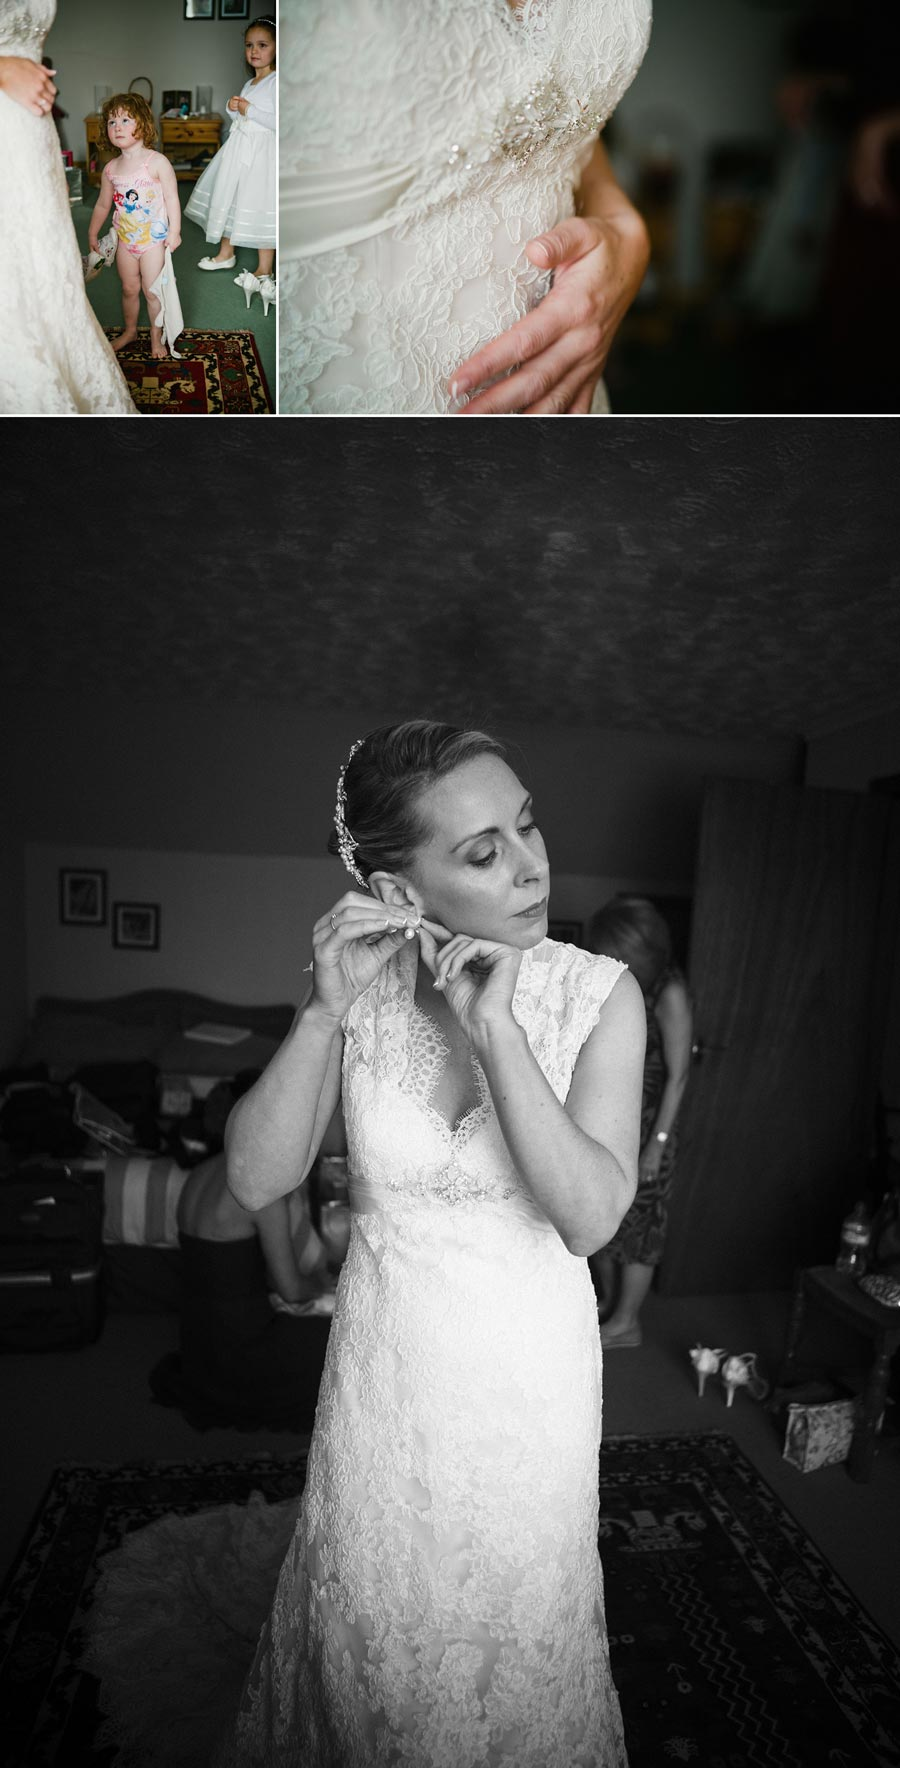 Beautiful photo of bride getting ready